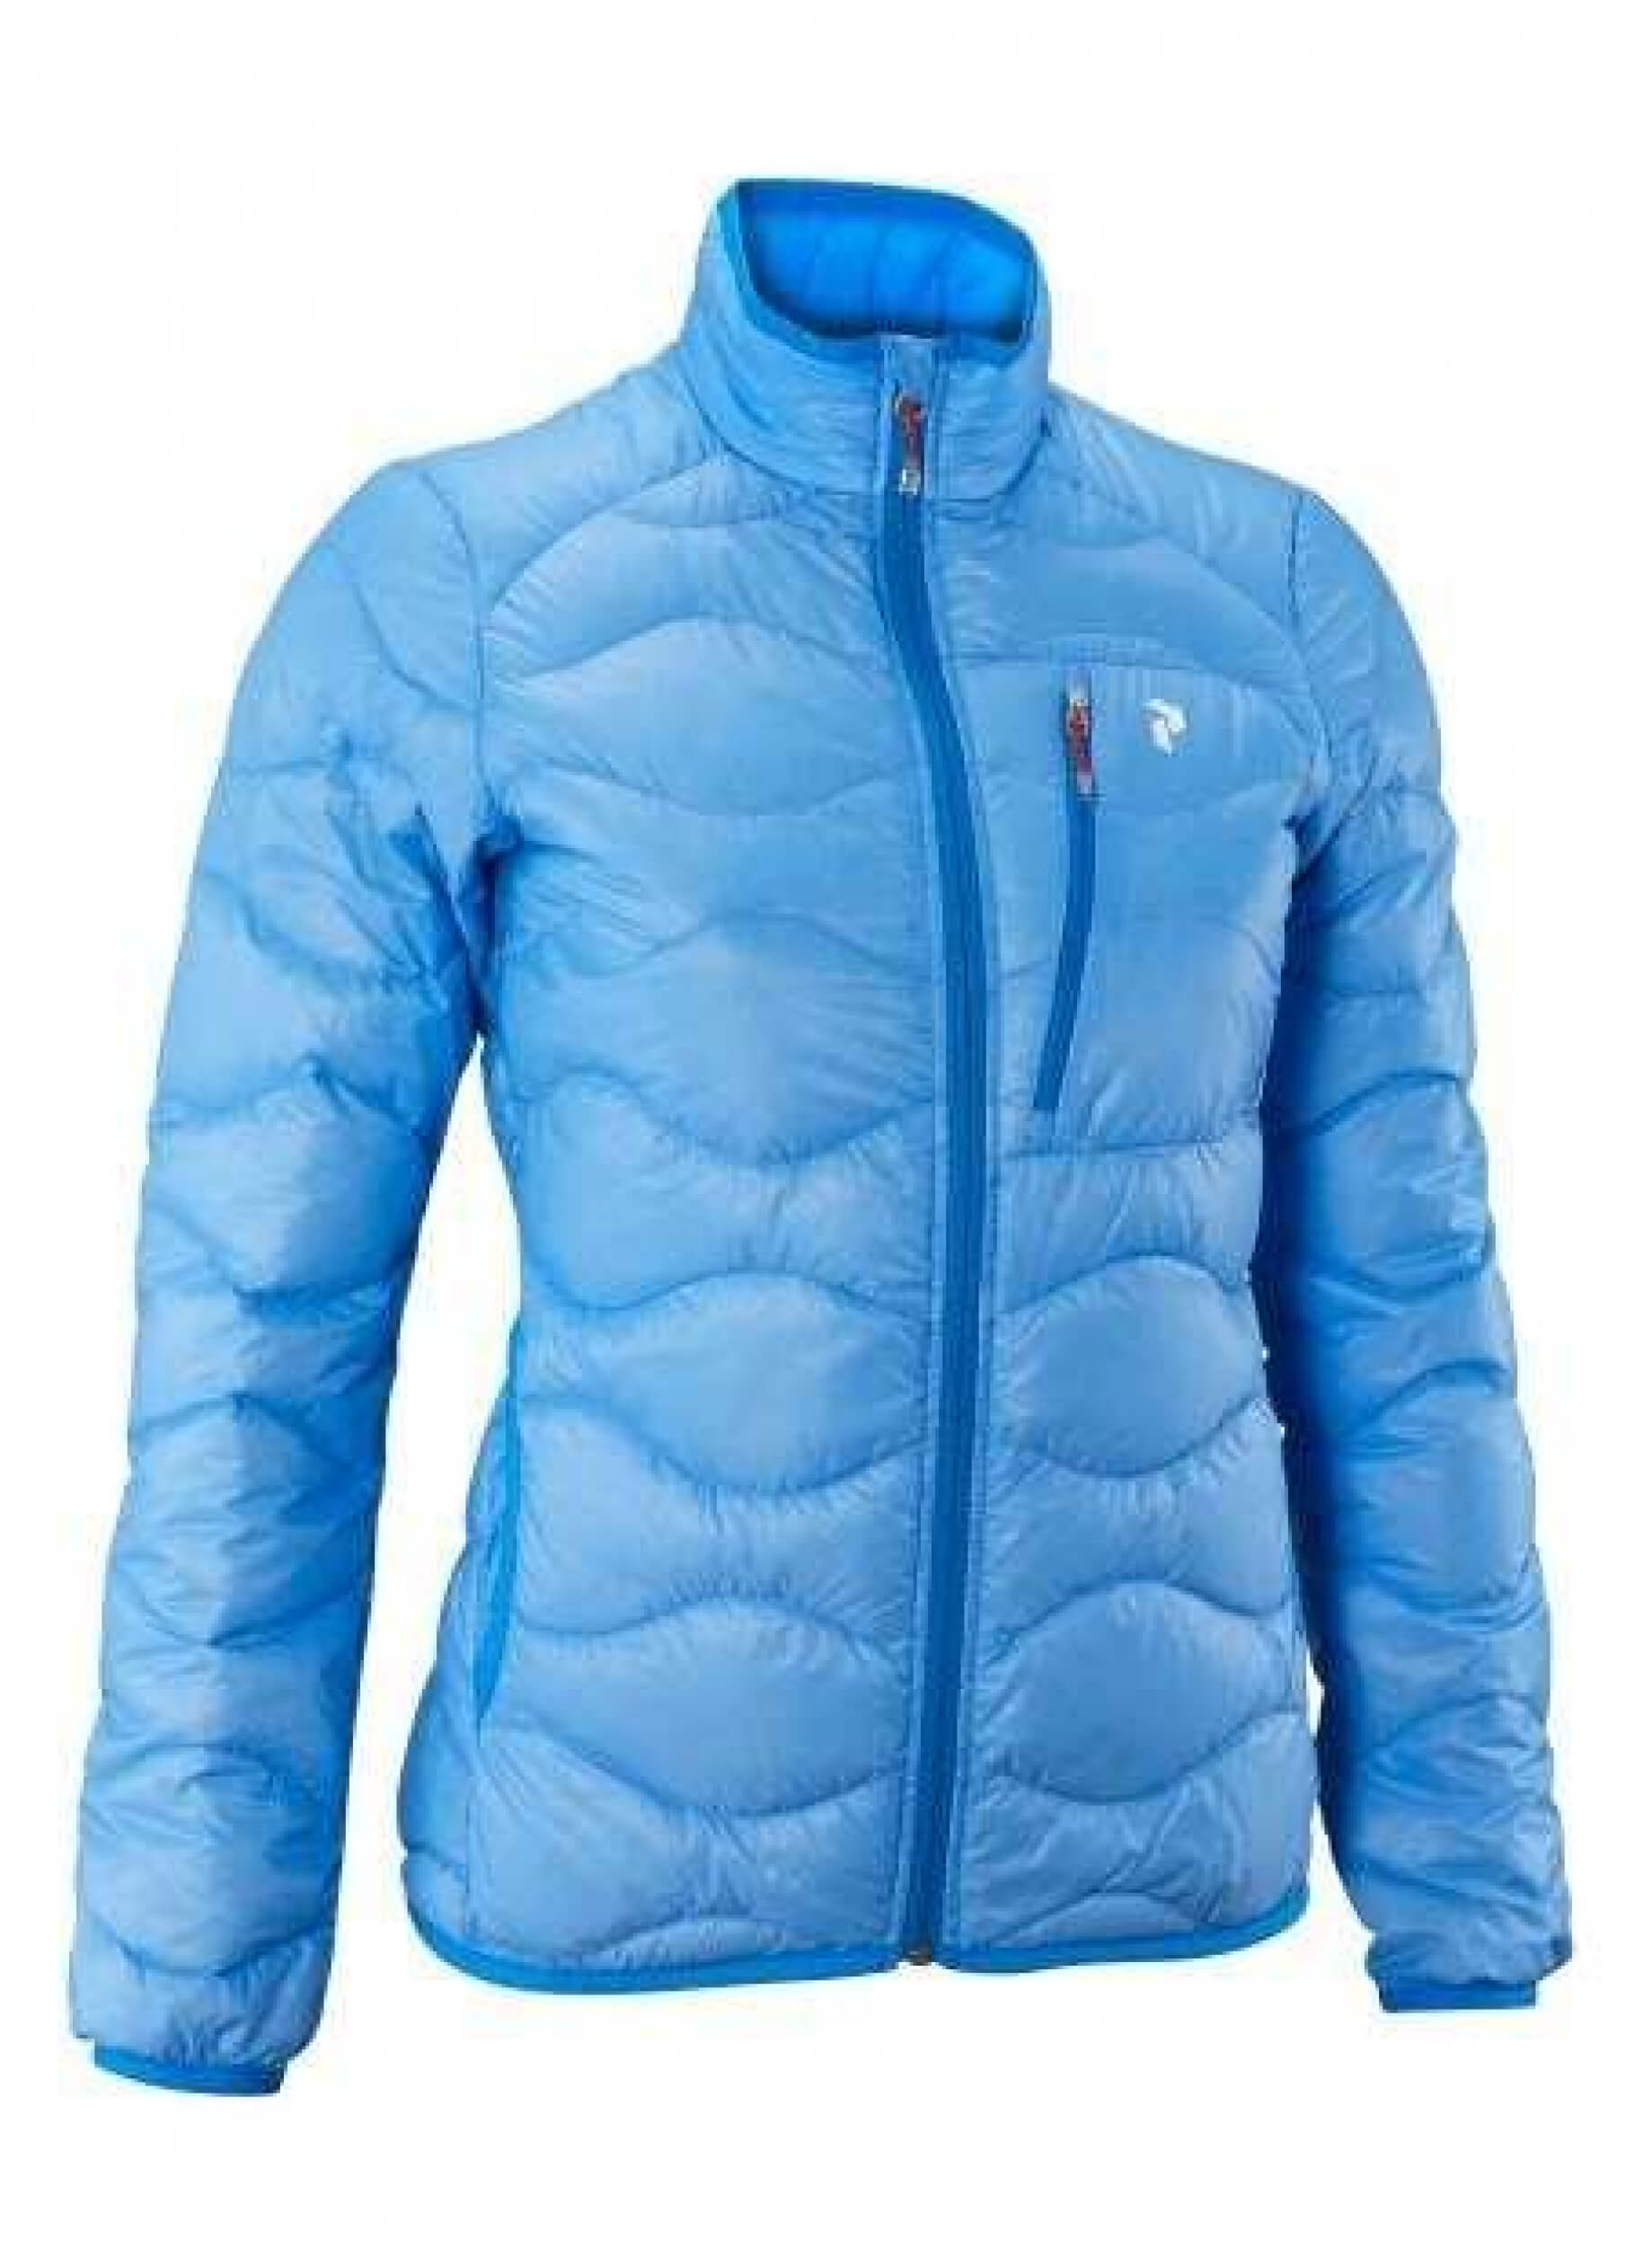 Details about Peak Performance Womens Outdoor Quilted Jacket Helium Light Blue New show original title